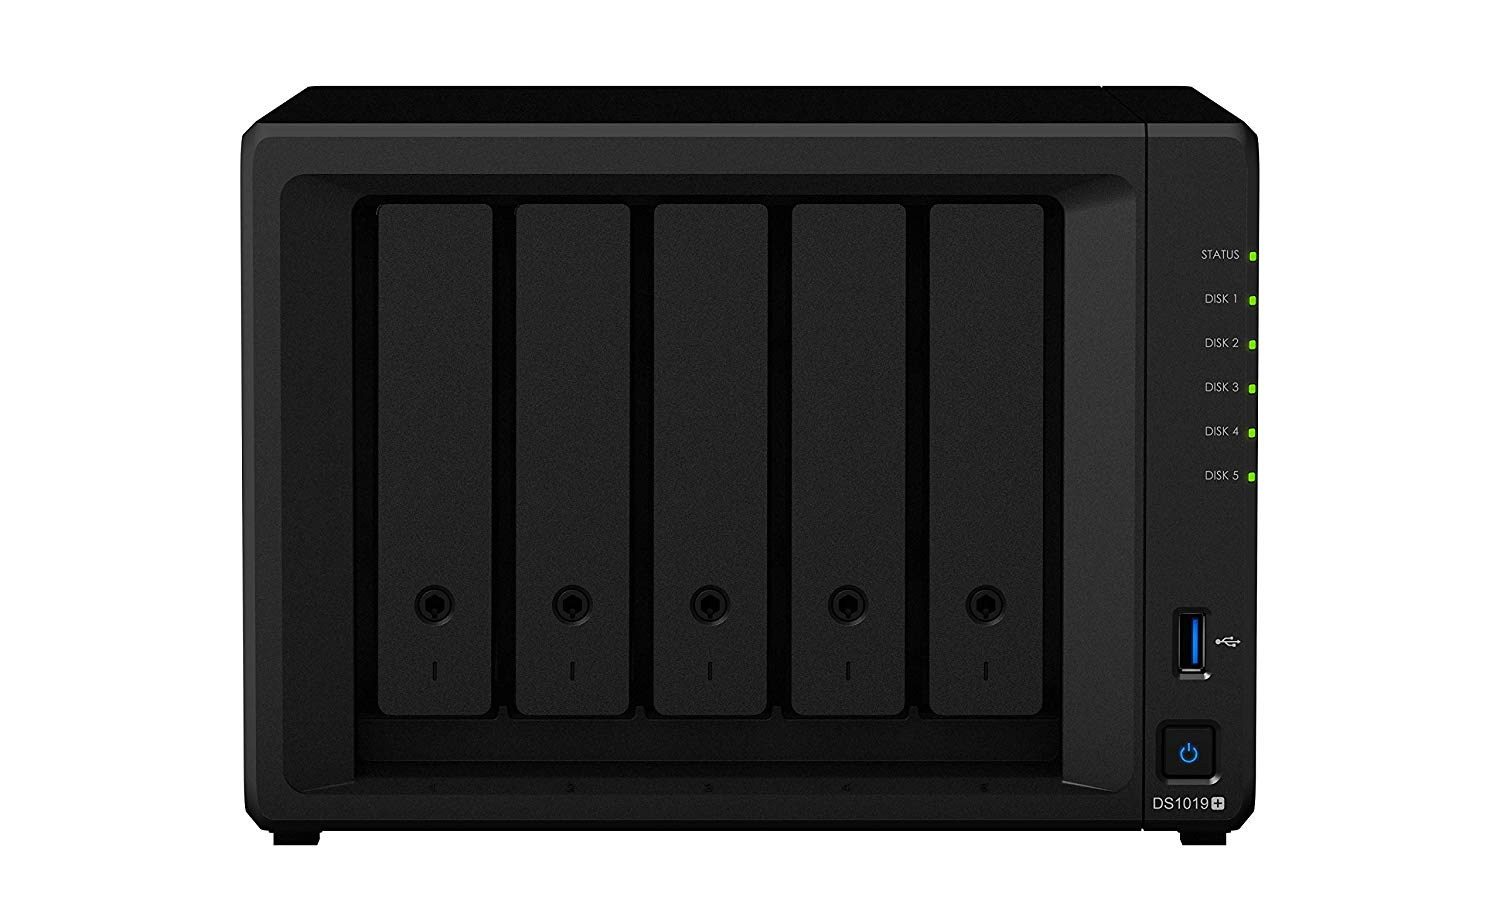 synology diskstation ds1019 build quality 1 image